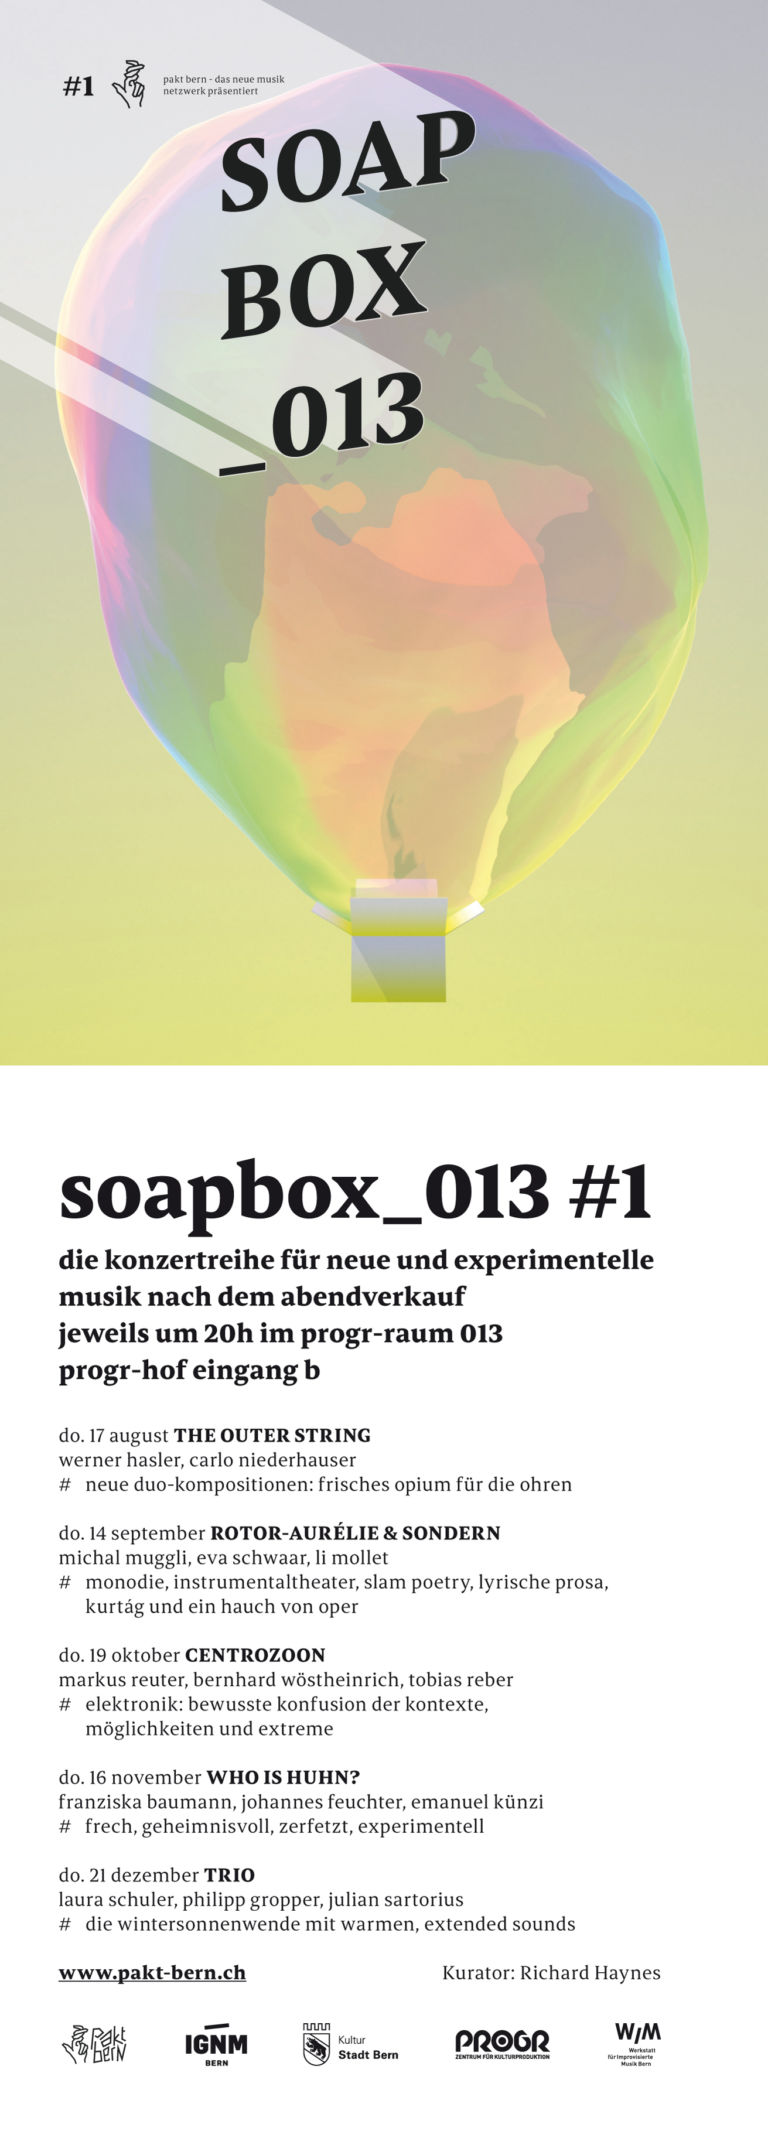 soapbox_13 #1: the outer string